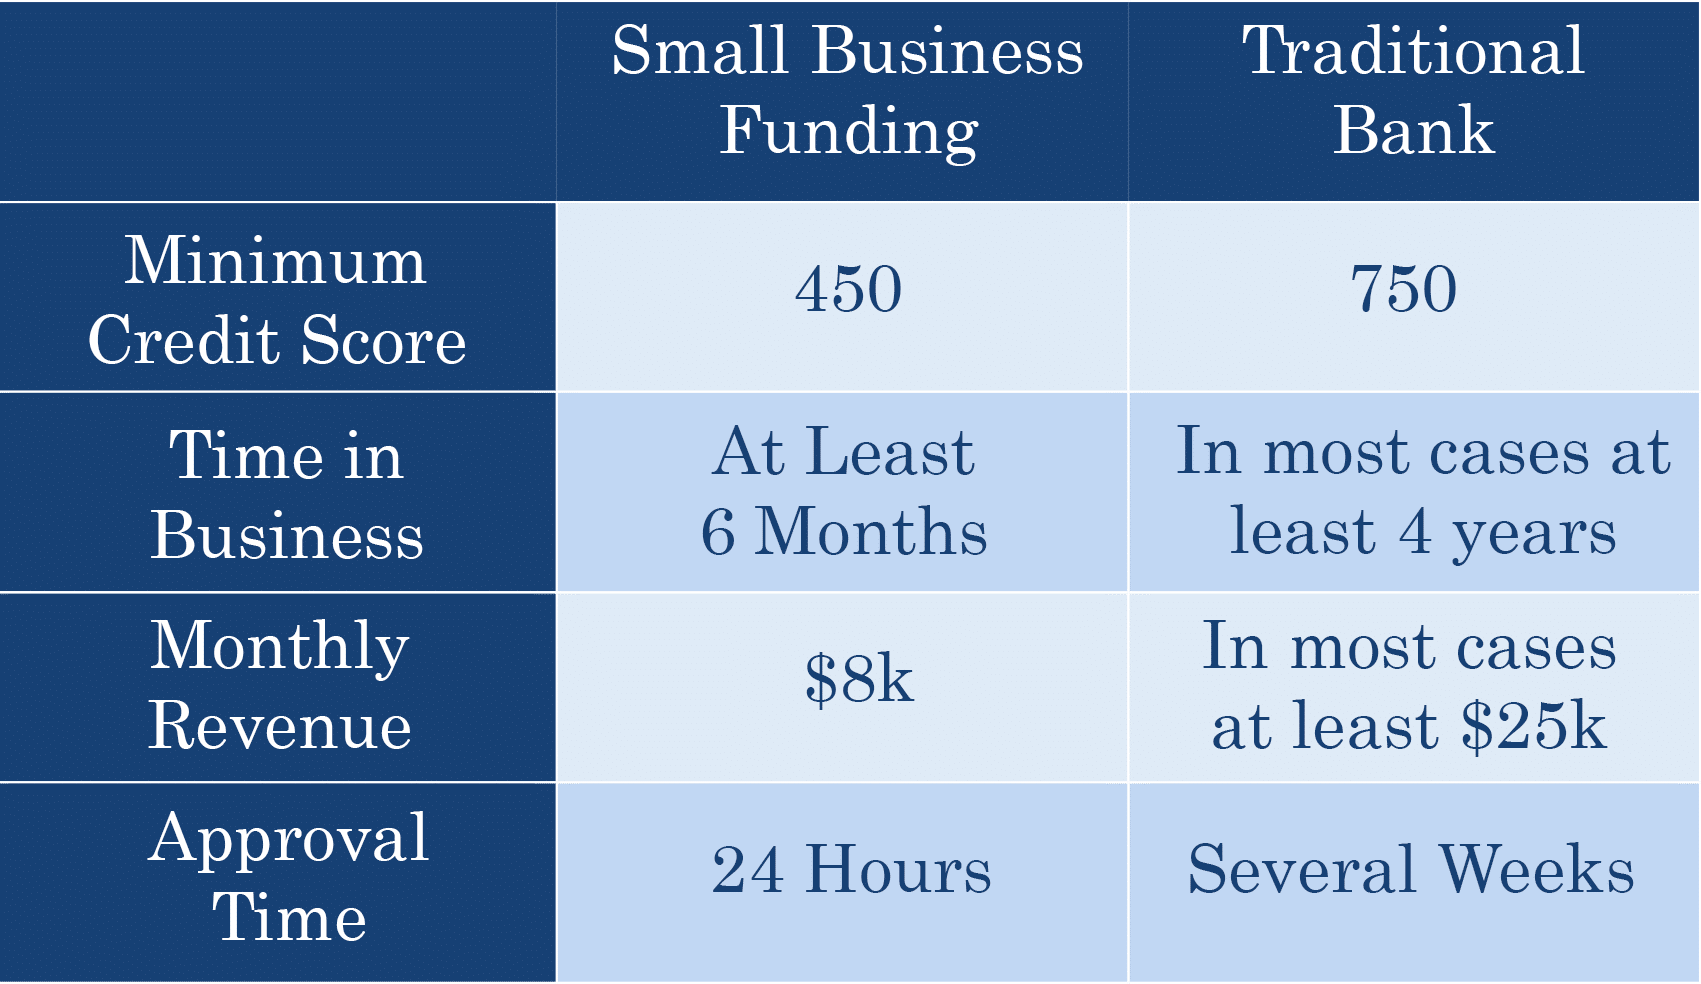 Small Business Funding vs Traditional Bank